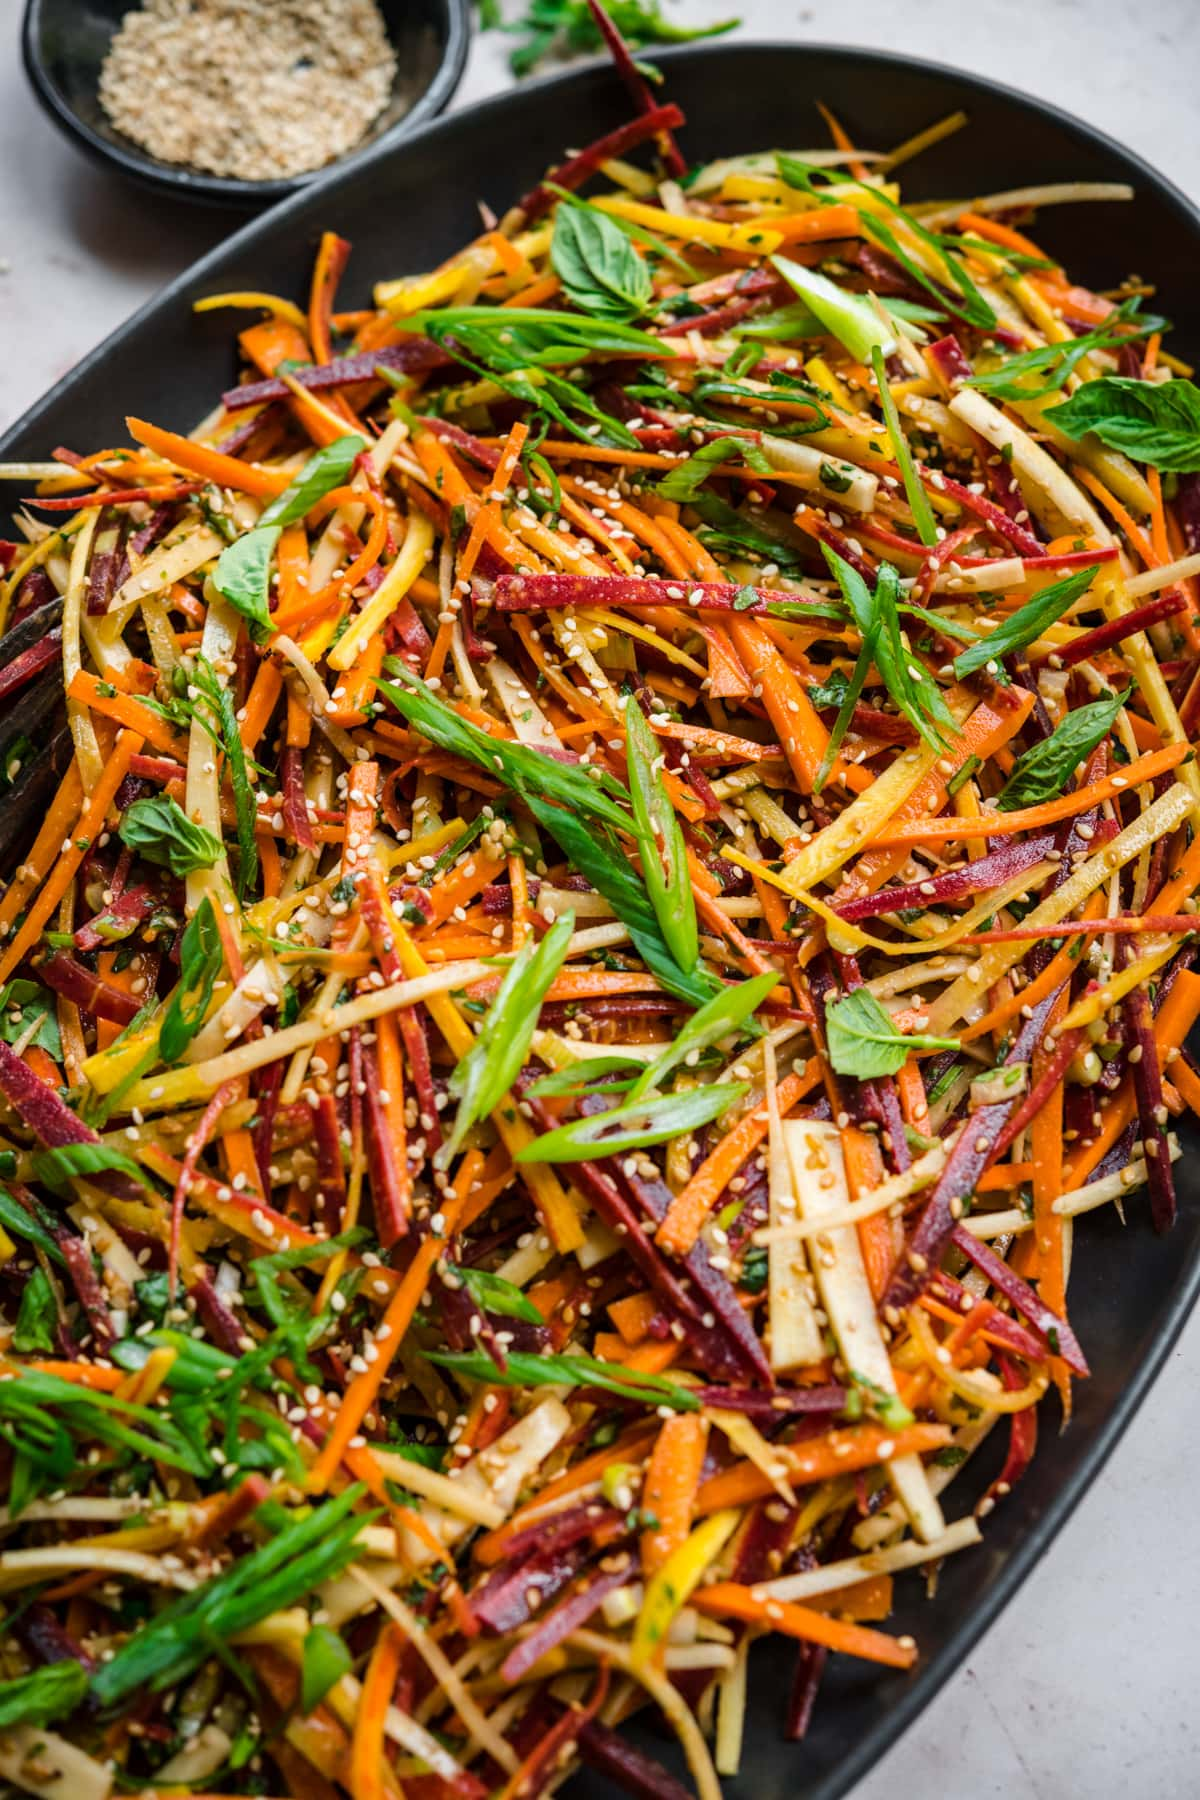 close up view of shaved rainbow carrot salad with miso sesame dressing on large black platter.